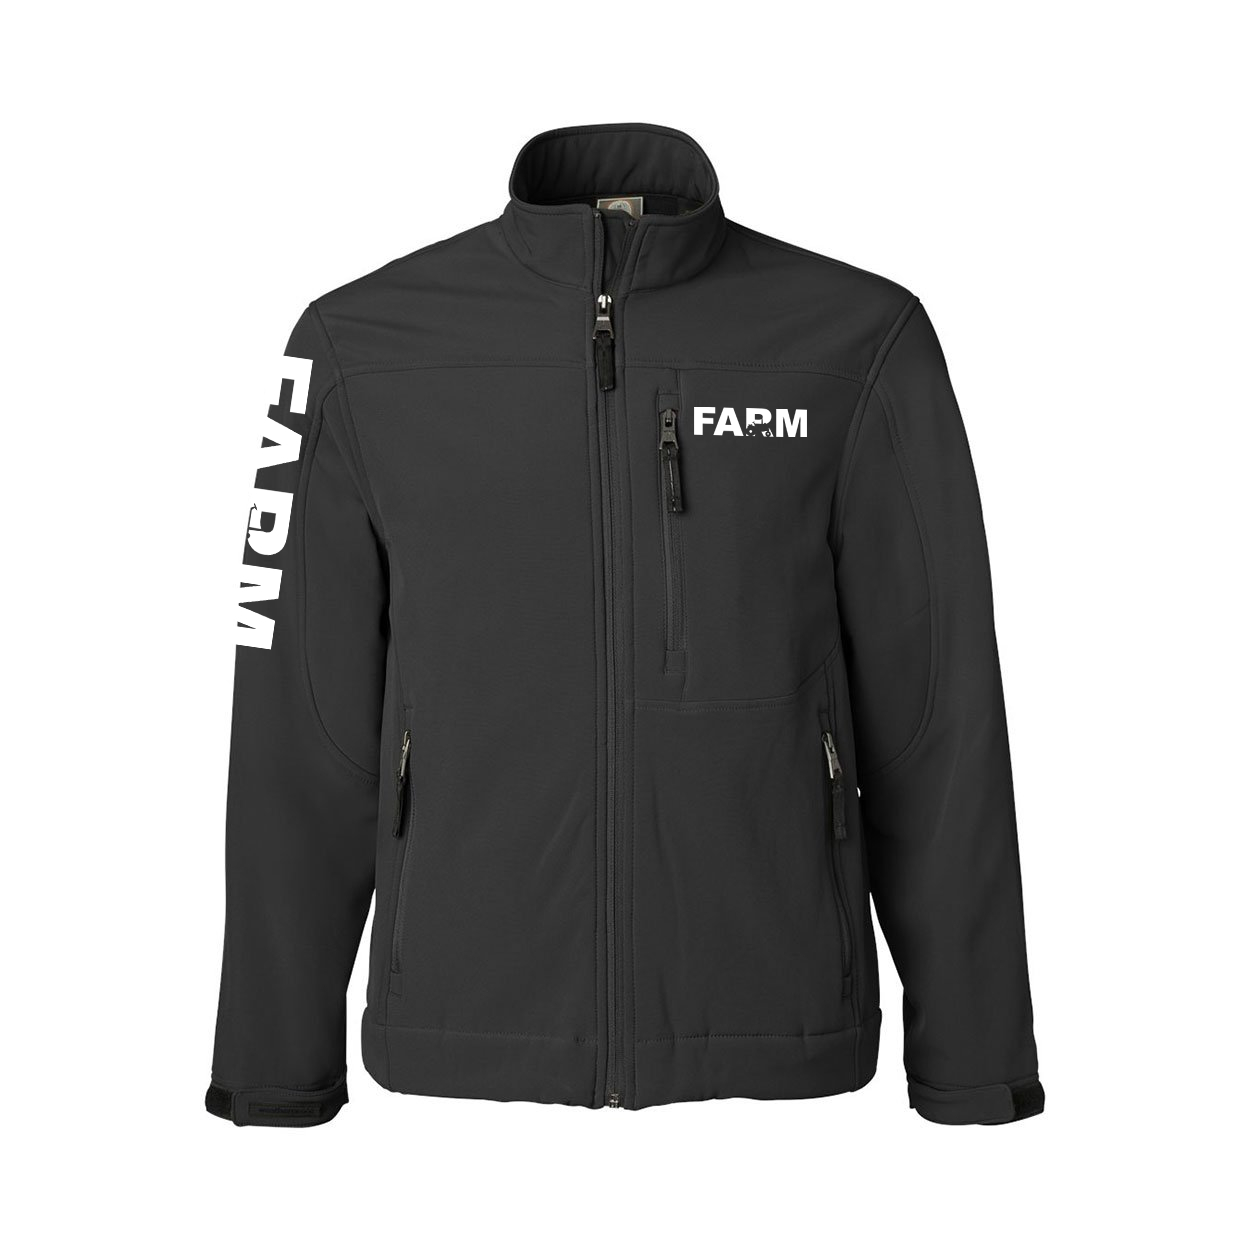 Farm Tractor Logo Classic Soft Shell Weatherproof Jacket (White Logo)